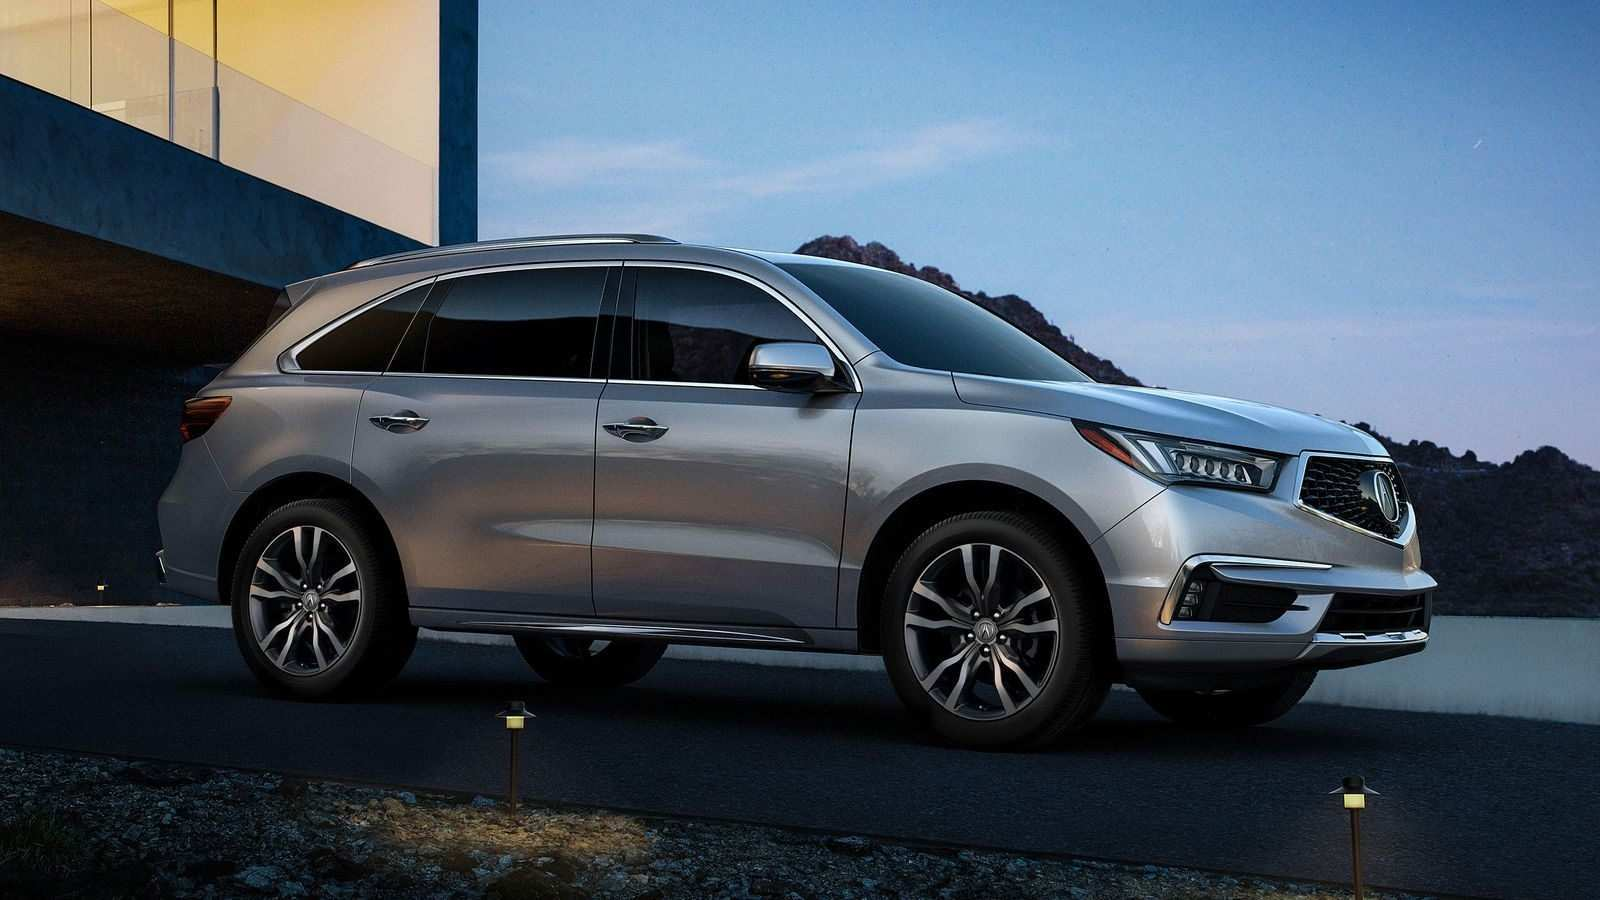 64 All New 2019 Acura Mdx Rumors Concept